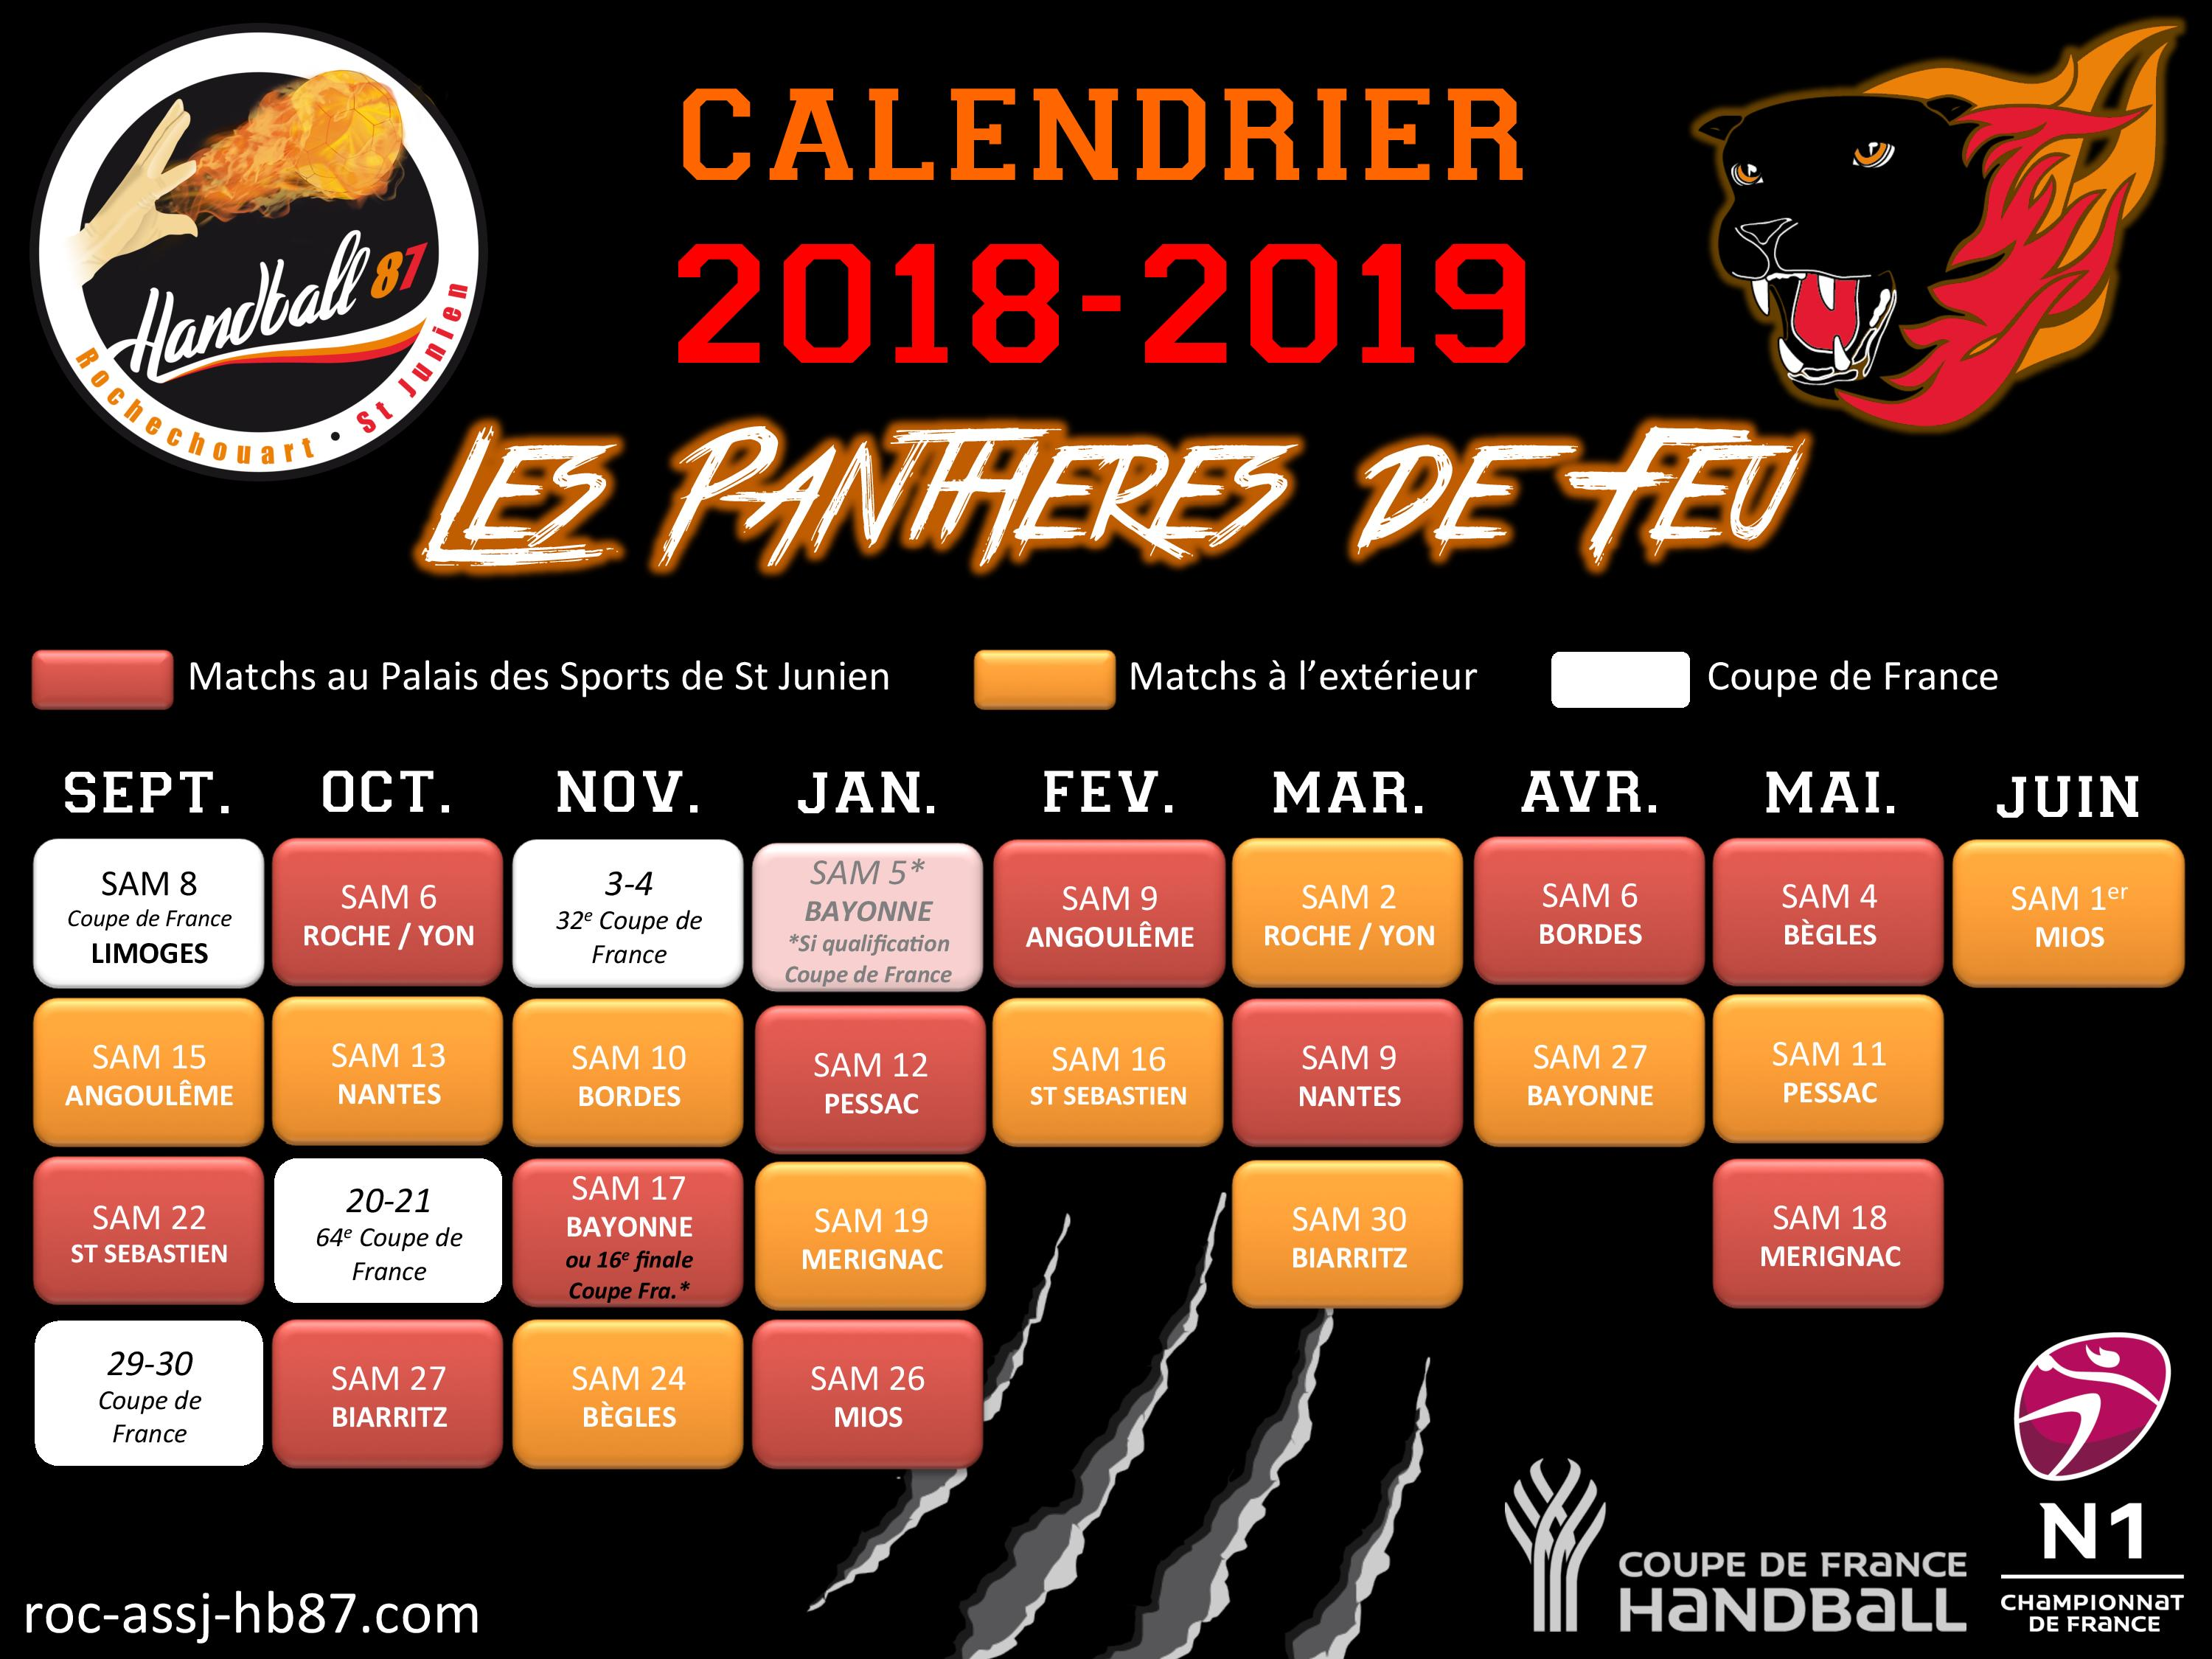 flyer-calendrier 18-19-N1 (1)-page-001